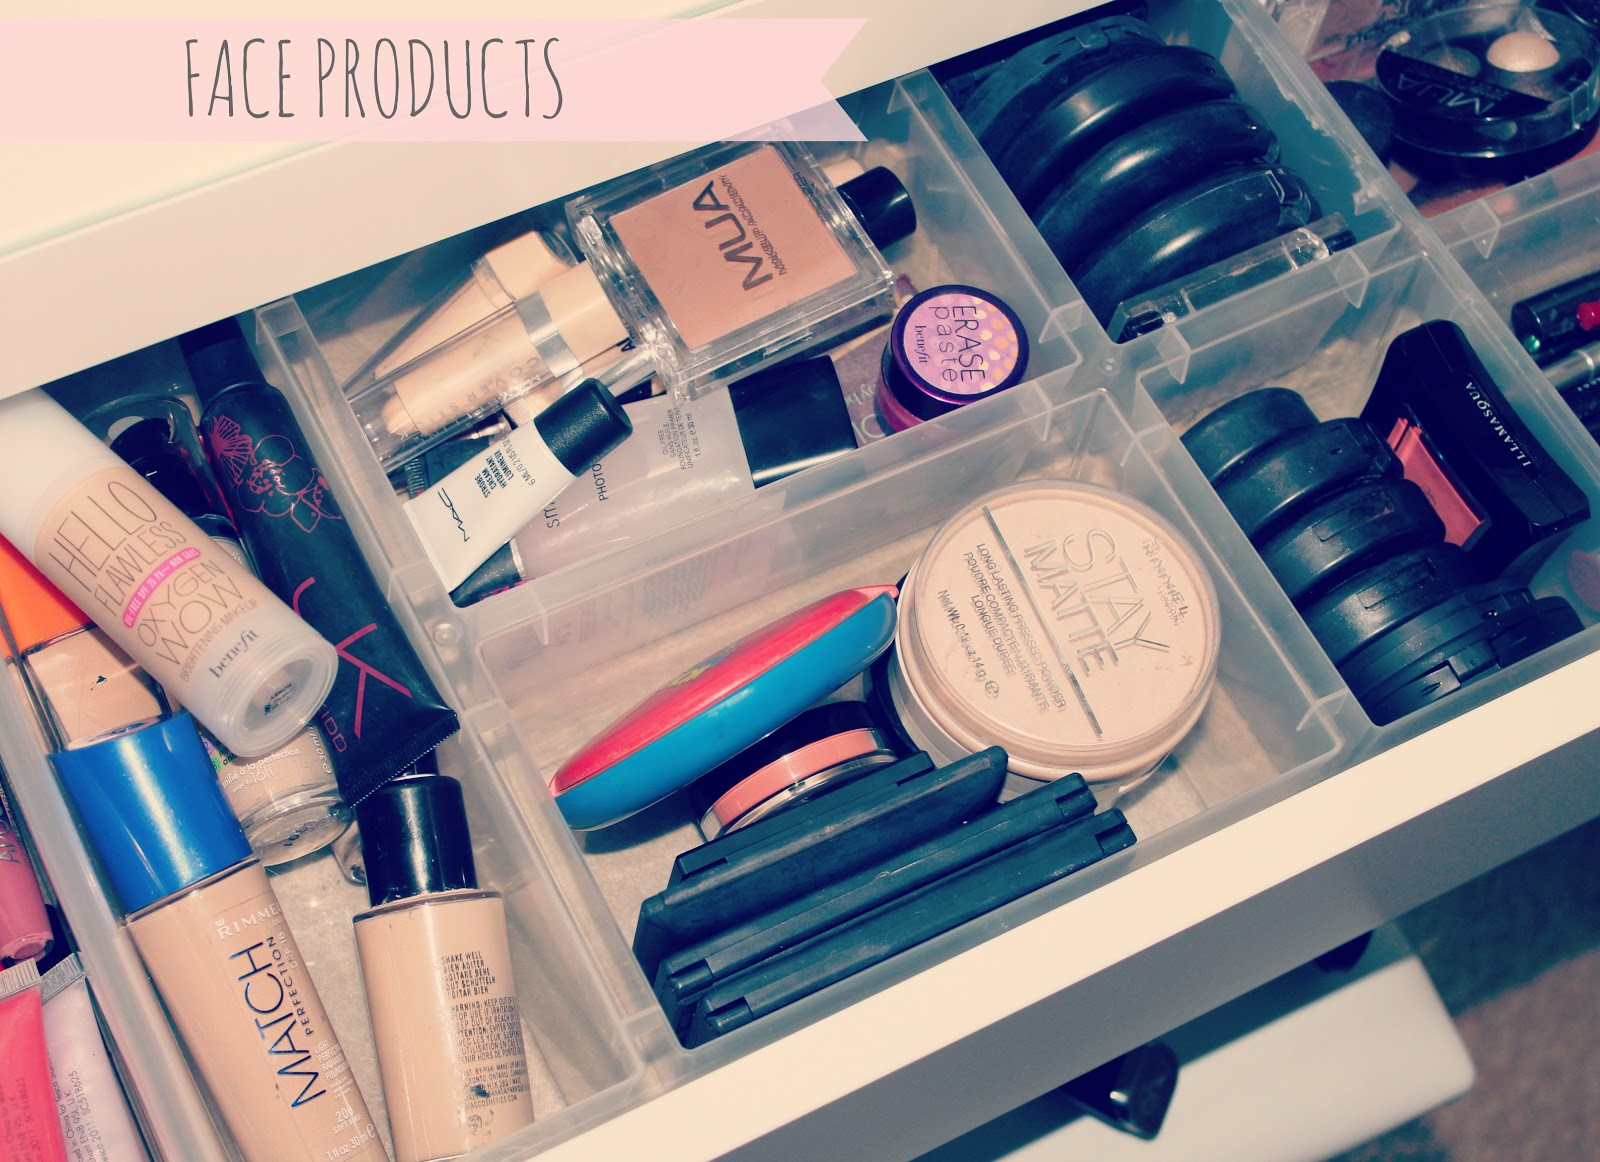 My makeup storage ikea malm dressing table sweet fashion make up ikea malm dressing table ikea antonius basket inserts makeup storage makeup collection watchthetrailerfo